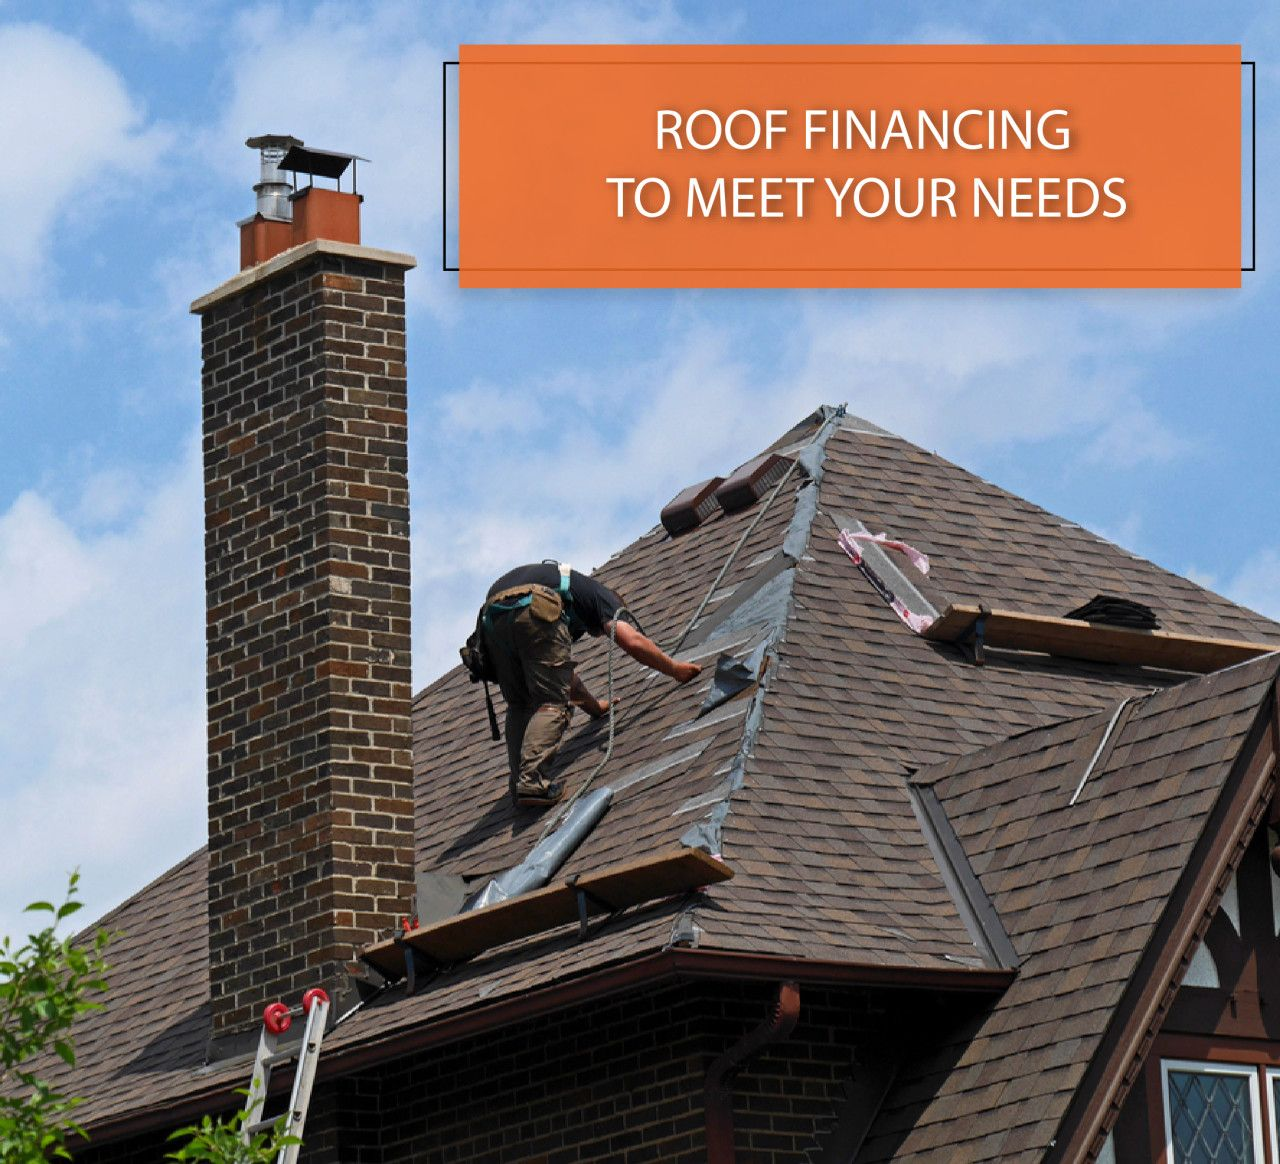 Did You Know We Offer Financing Options For Your Roof Replacement Get A Free Estimate On A New Roof Today Financingoptio Roofing Contractors Roofing Roof